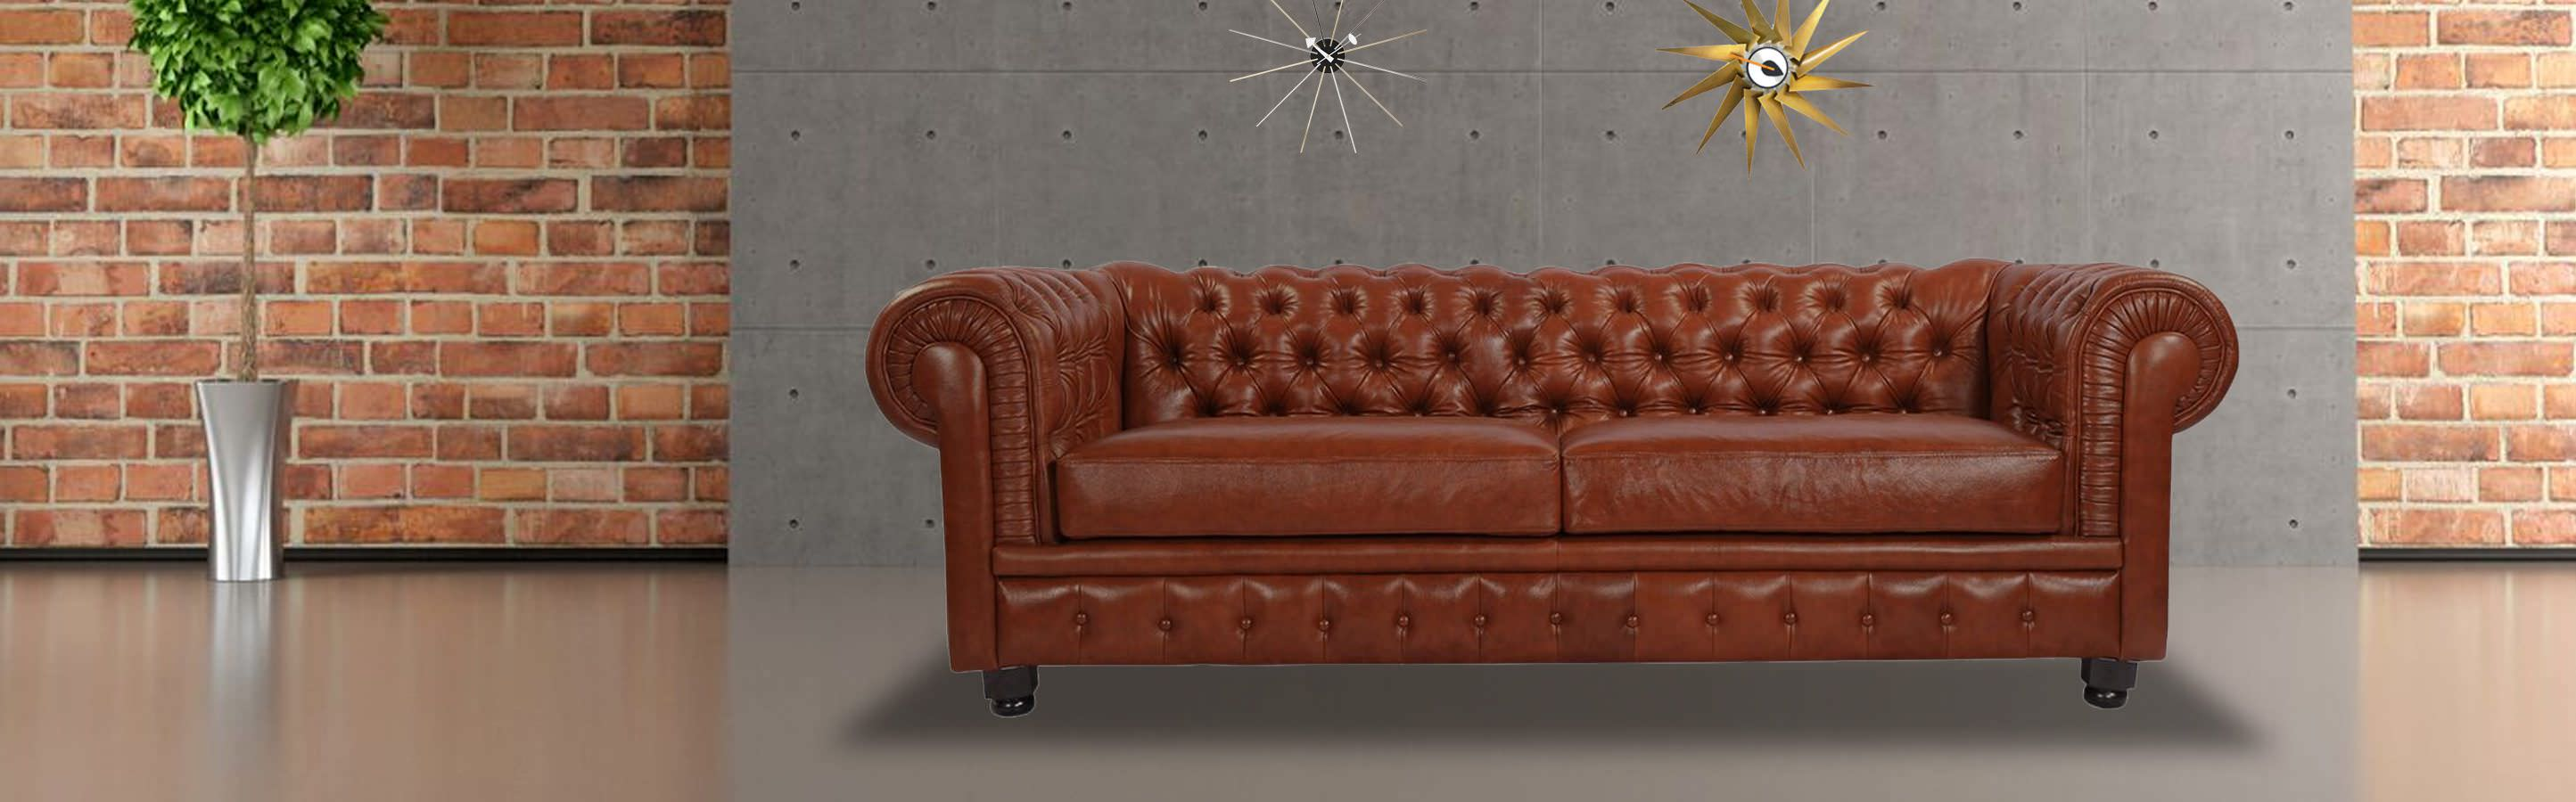 Modern Chesterfield tufted furniture fabric and leather sofa club ...